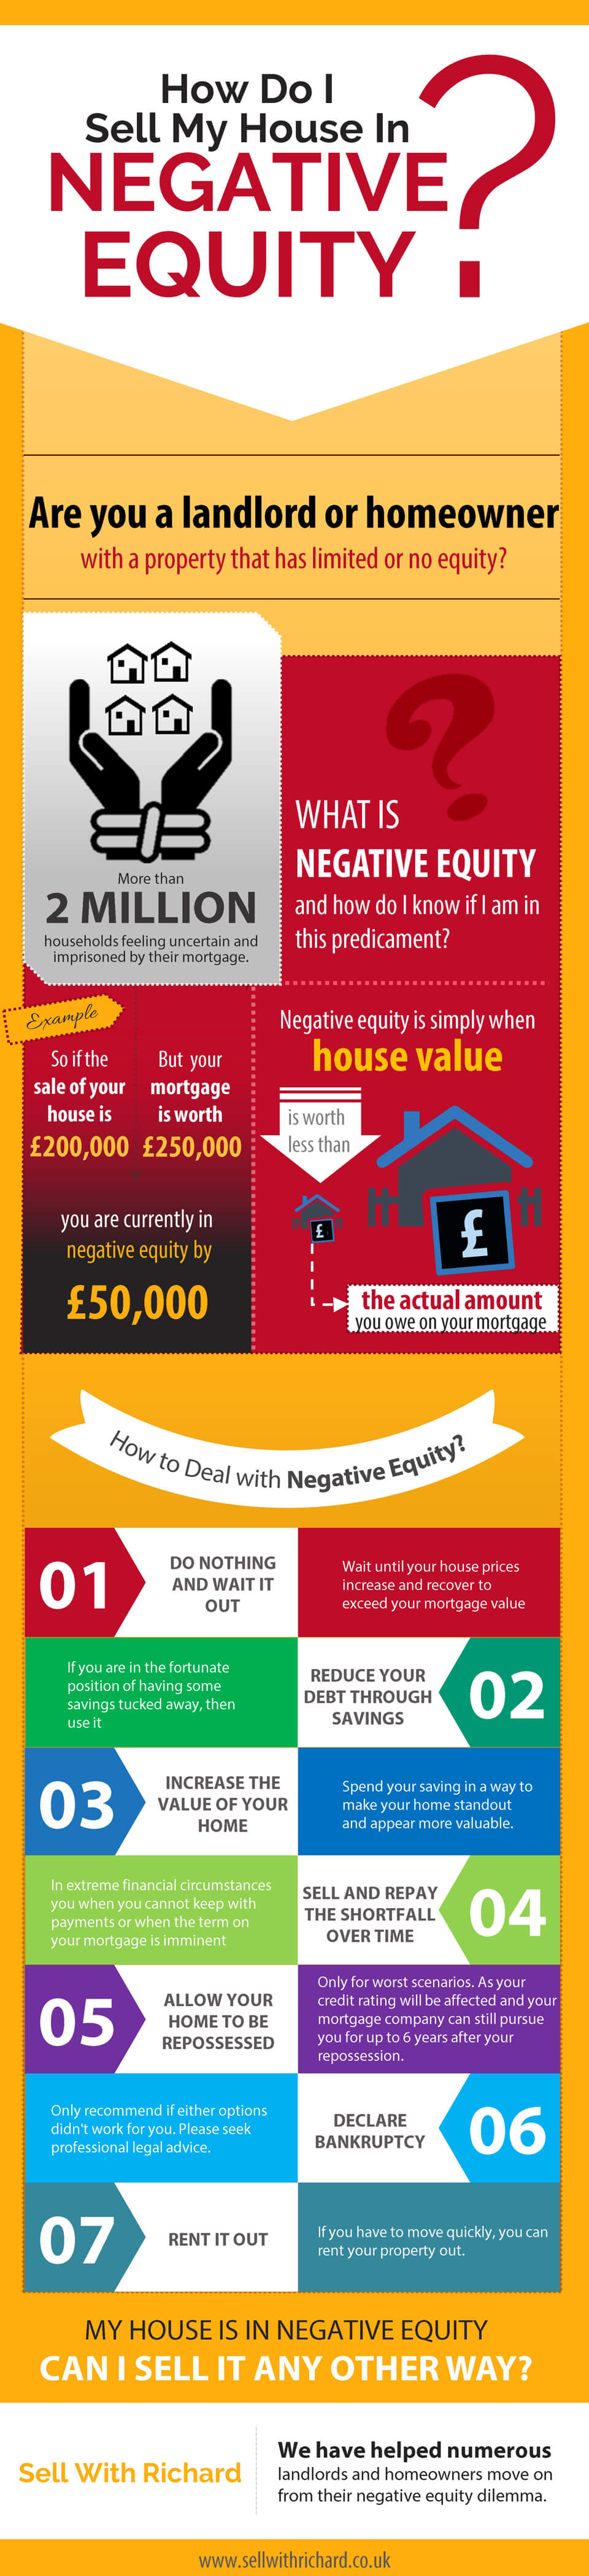 How-Do-I-Sell-My-House-In-Negative-Equity-infographic-plaza